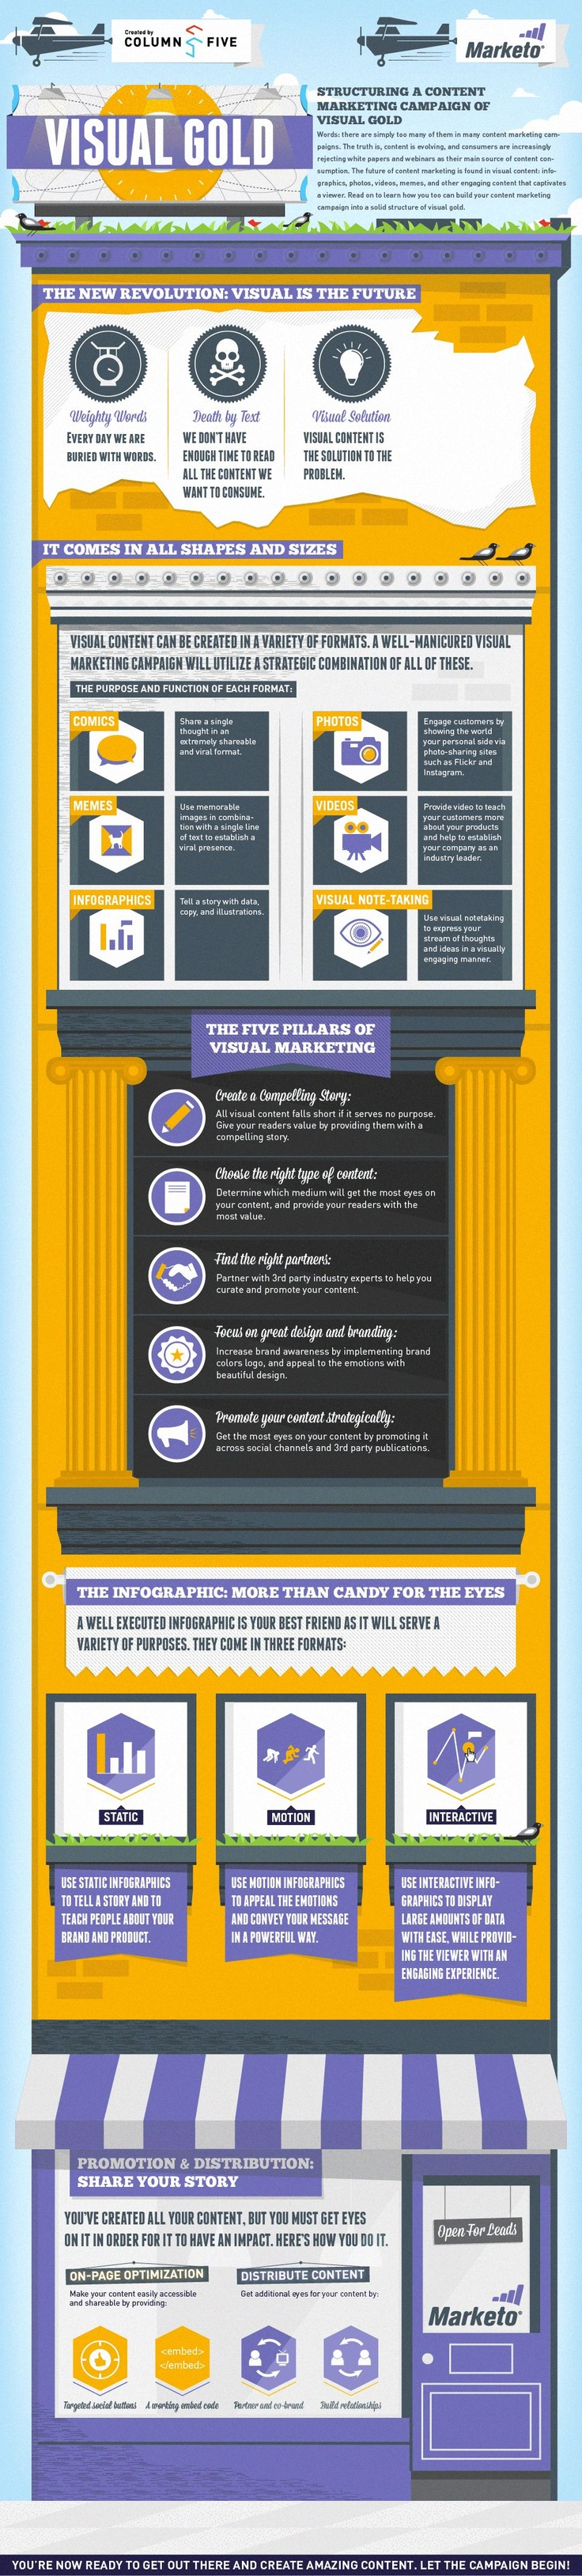 Visual Marketing Guide-infographic